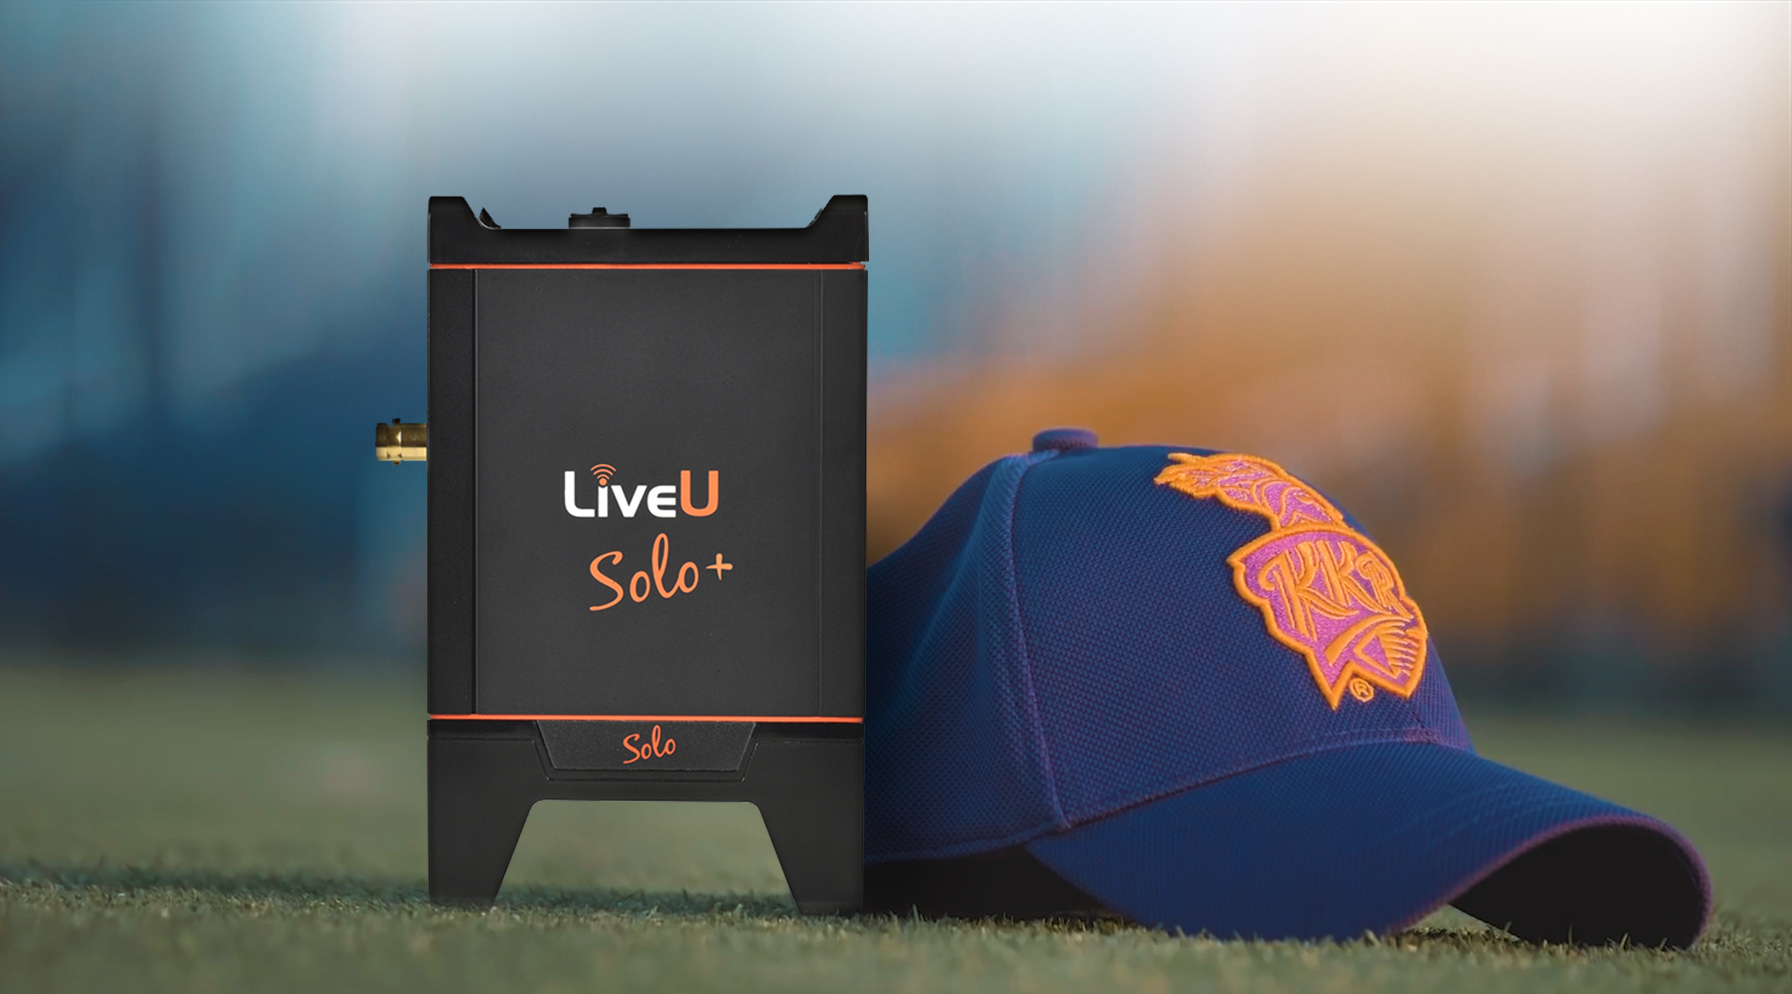 Kolkata Knight Riders select LiveU Solo for all their digital content in IPL2020